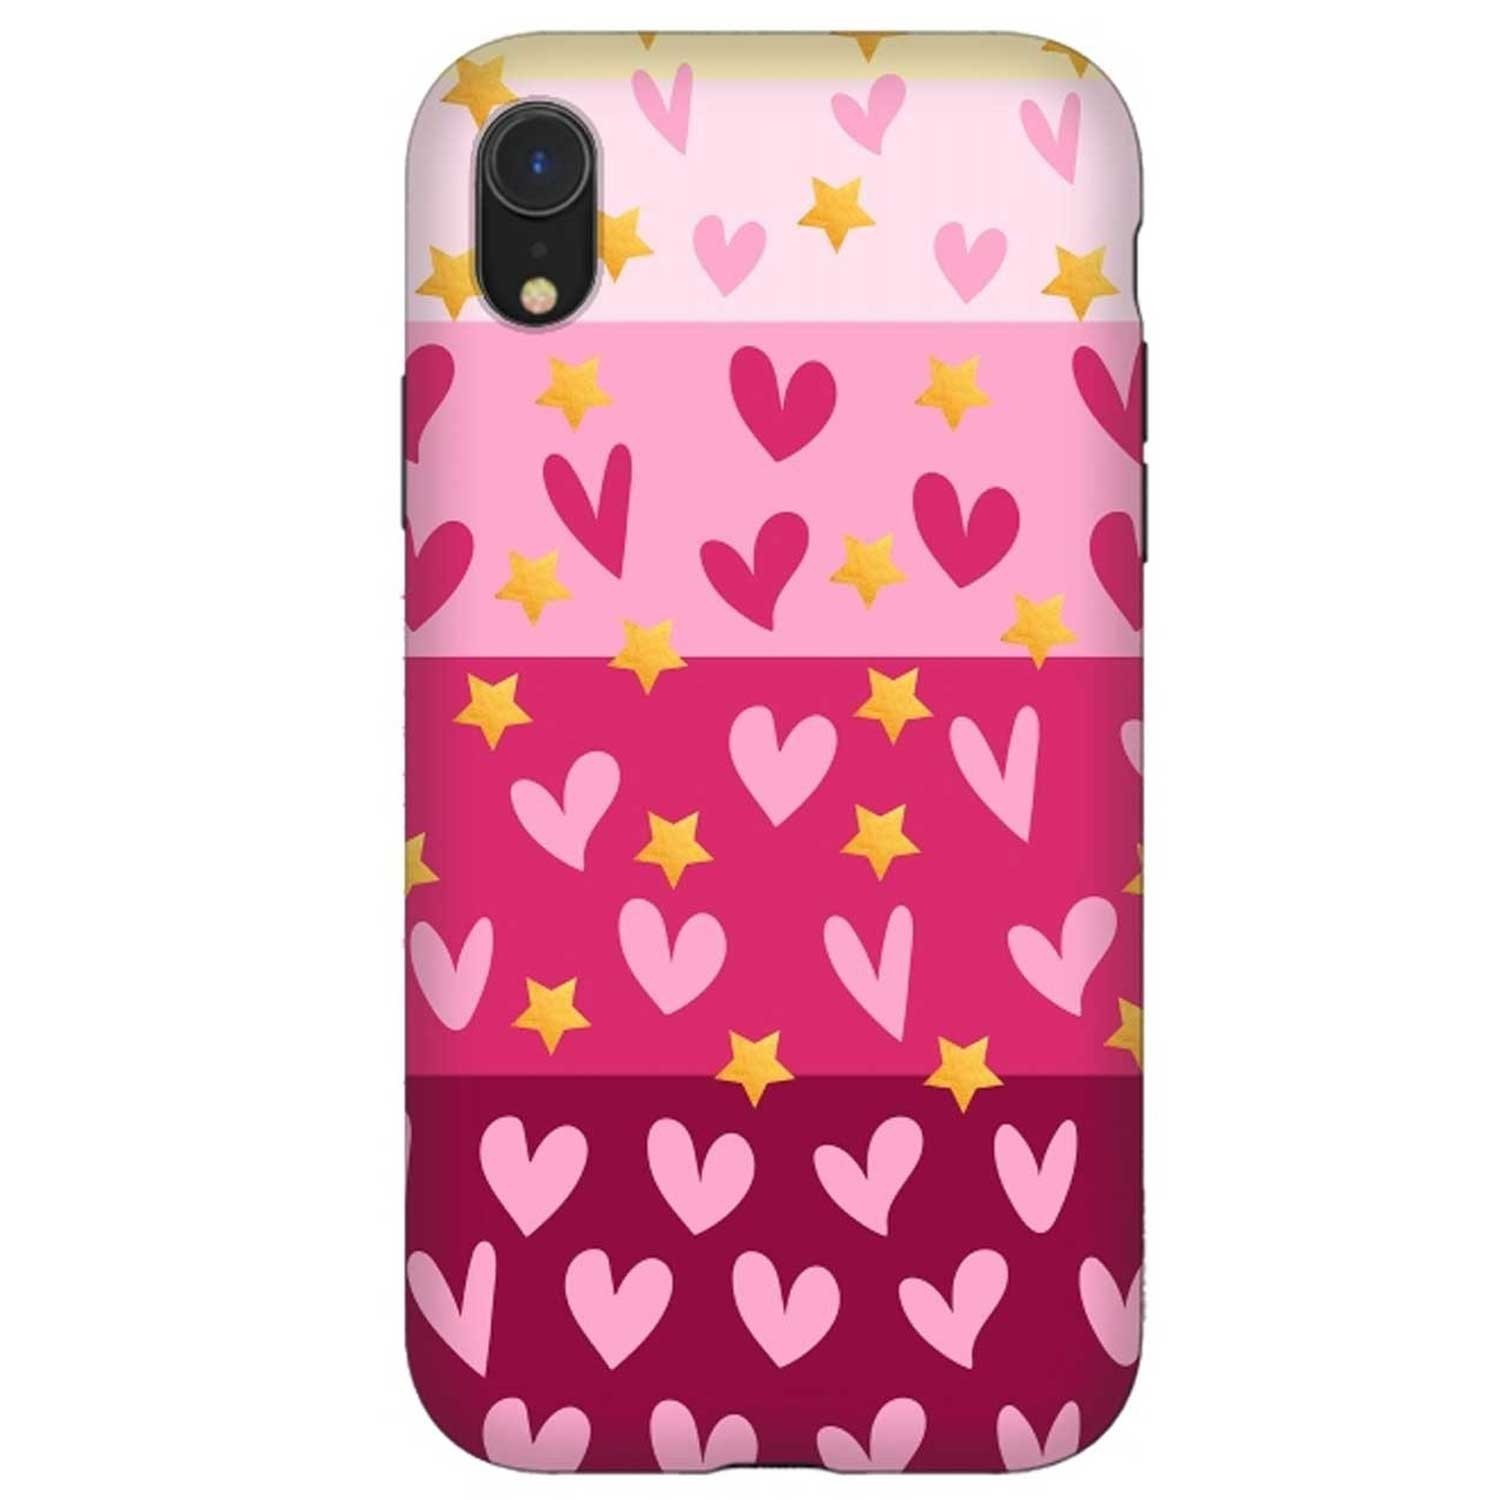 Case - ArtsCase StrongFit for iPhone  XR - Pink Hearts